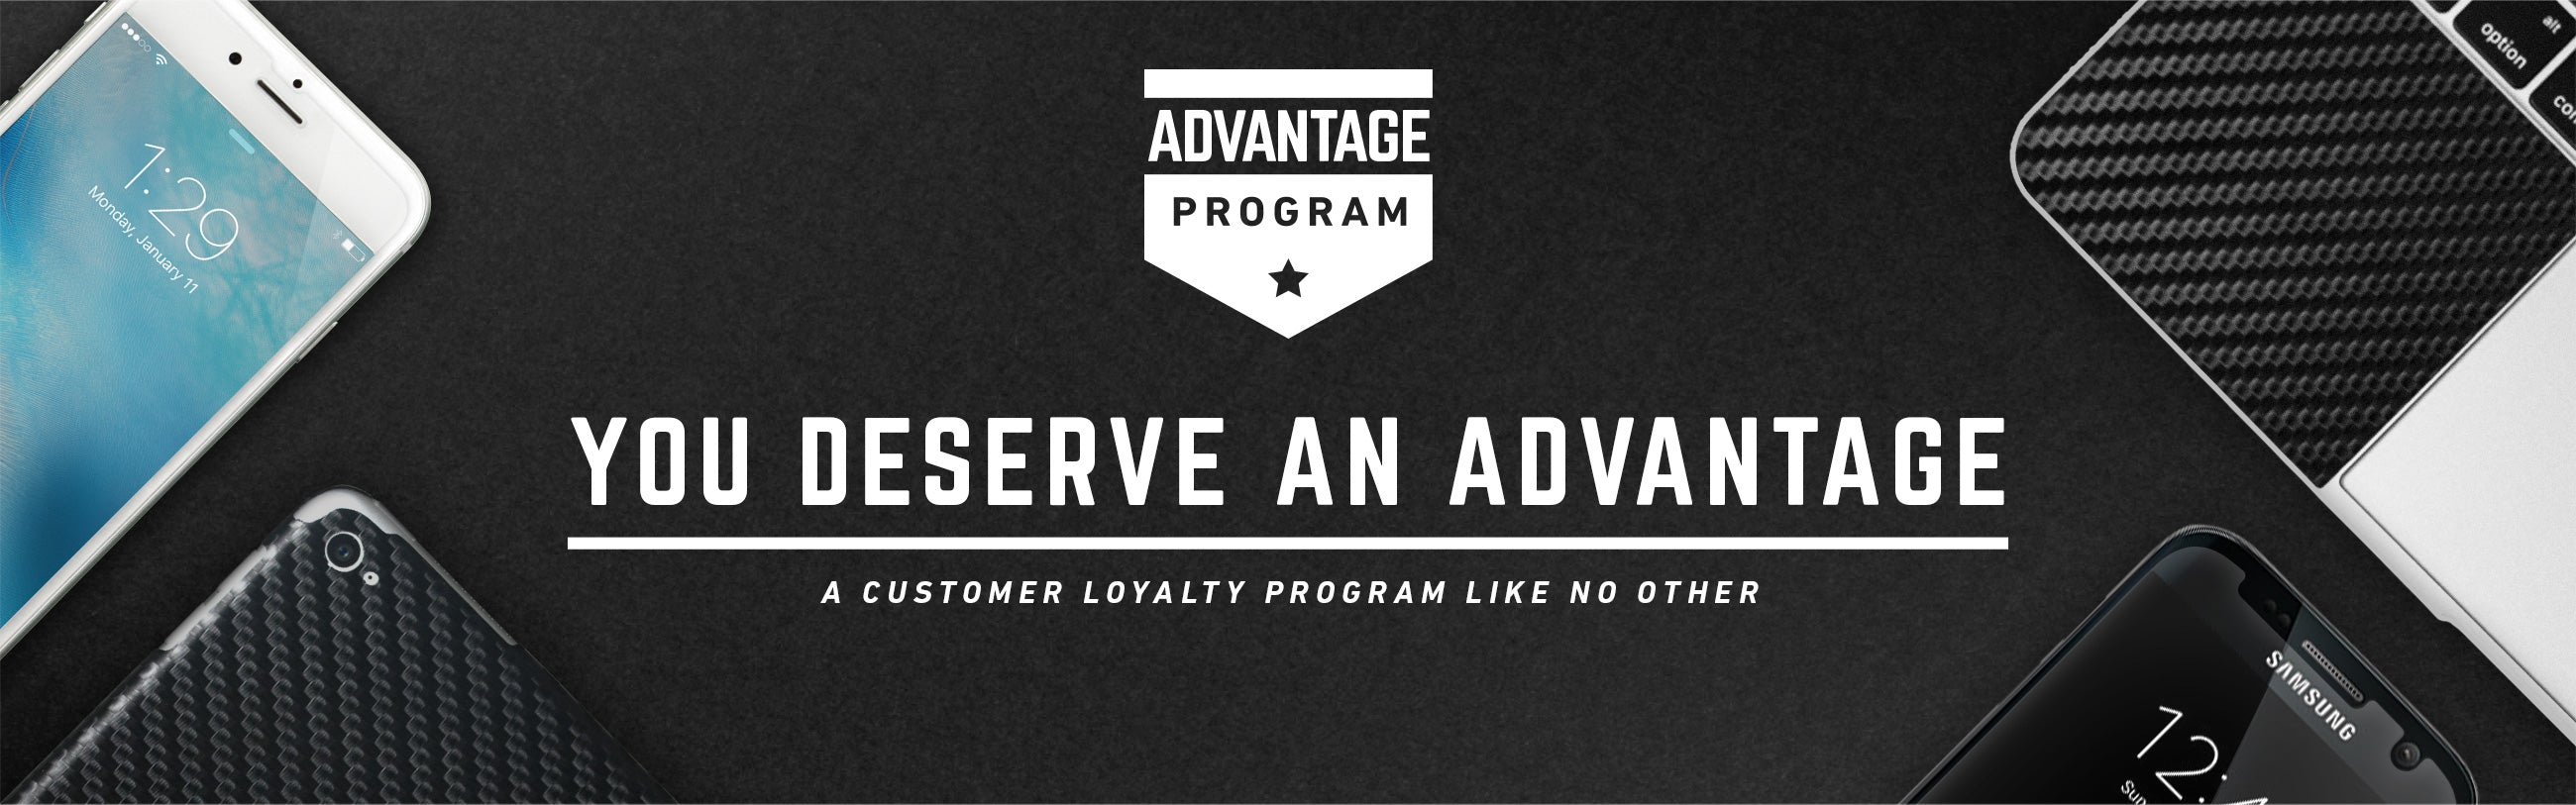 BodyGuardz Advantage Program Banner